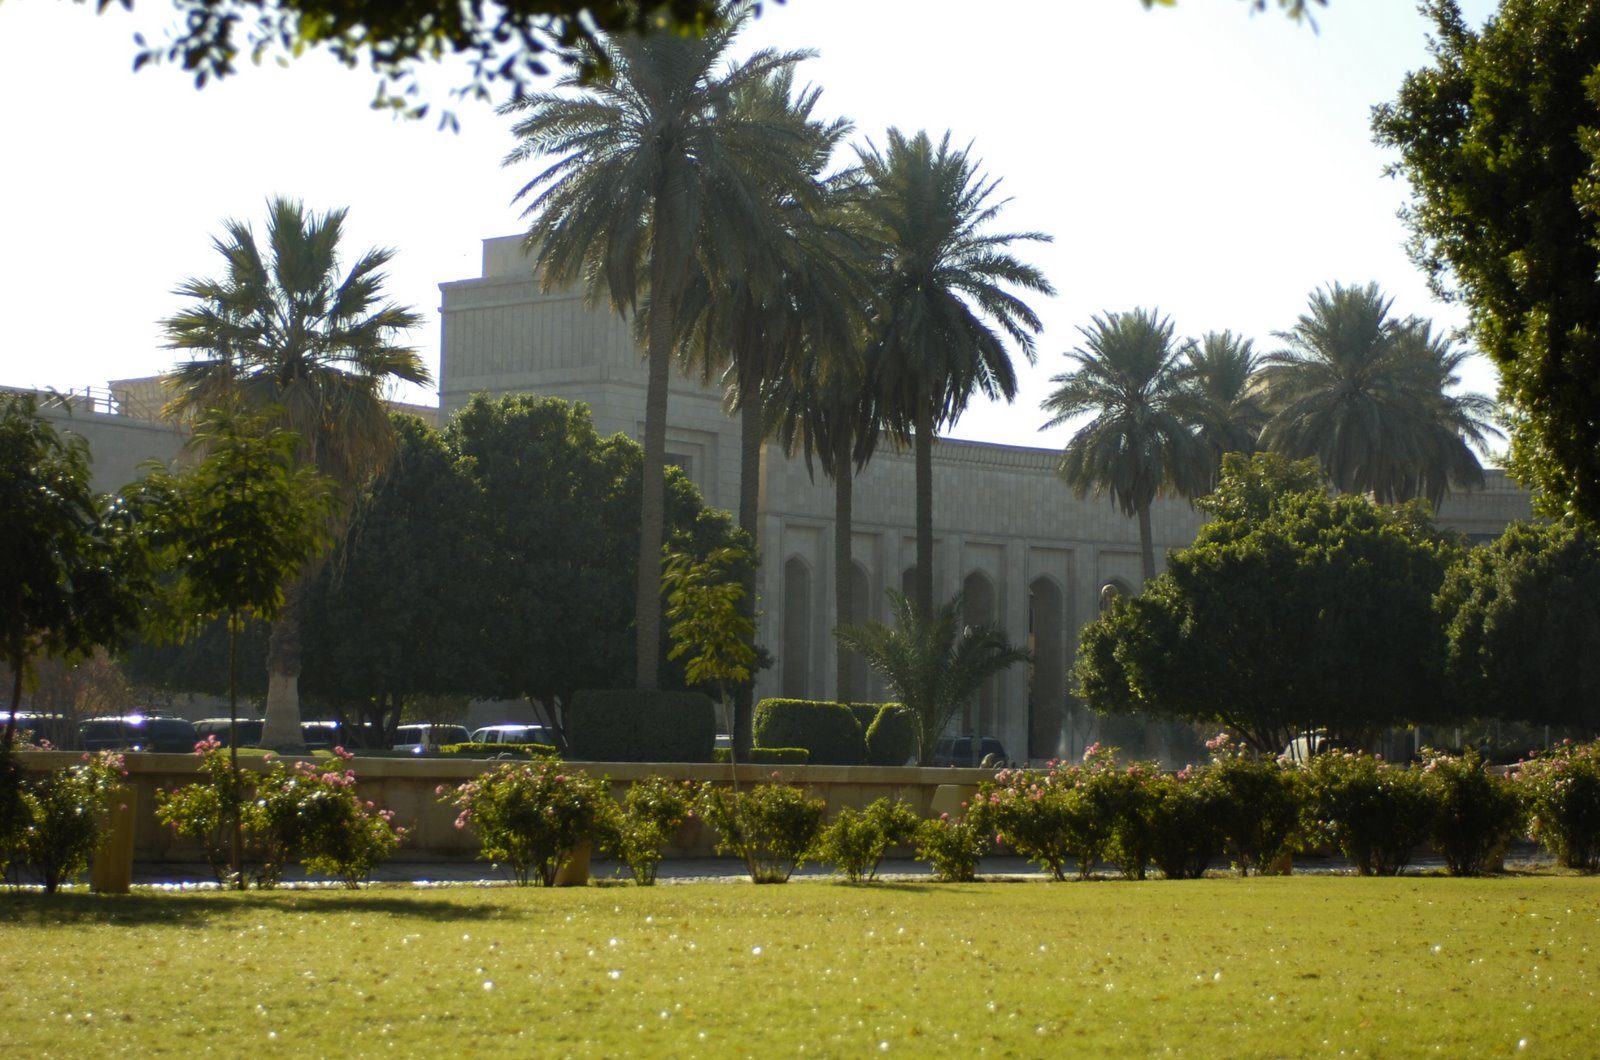 Republican Palace, Iraq